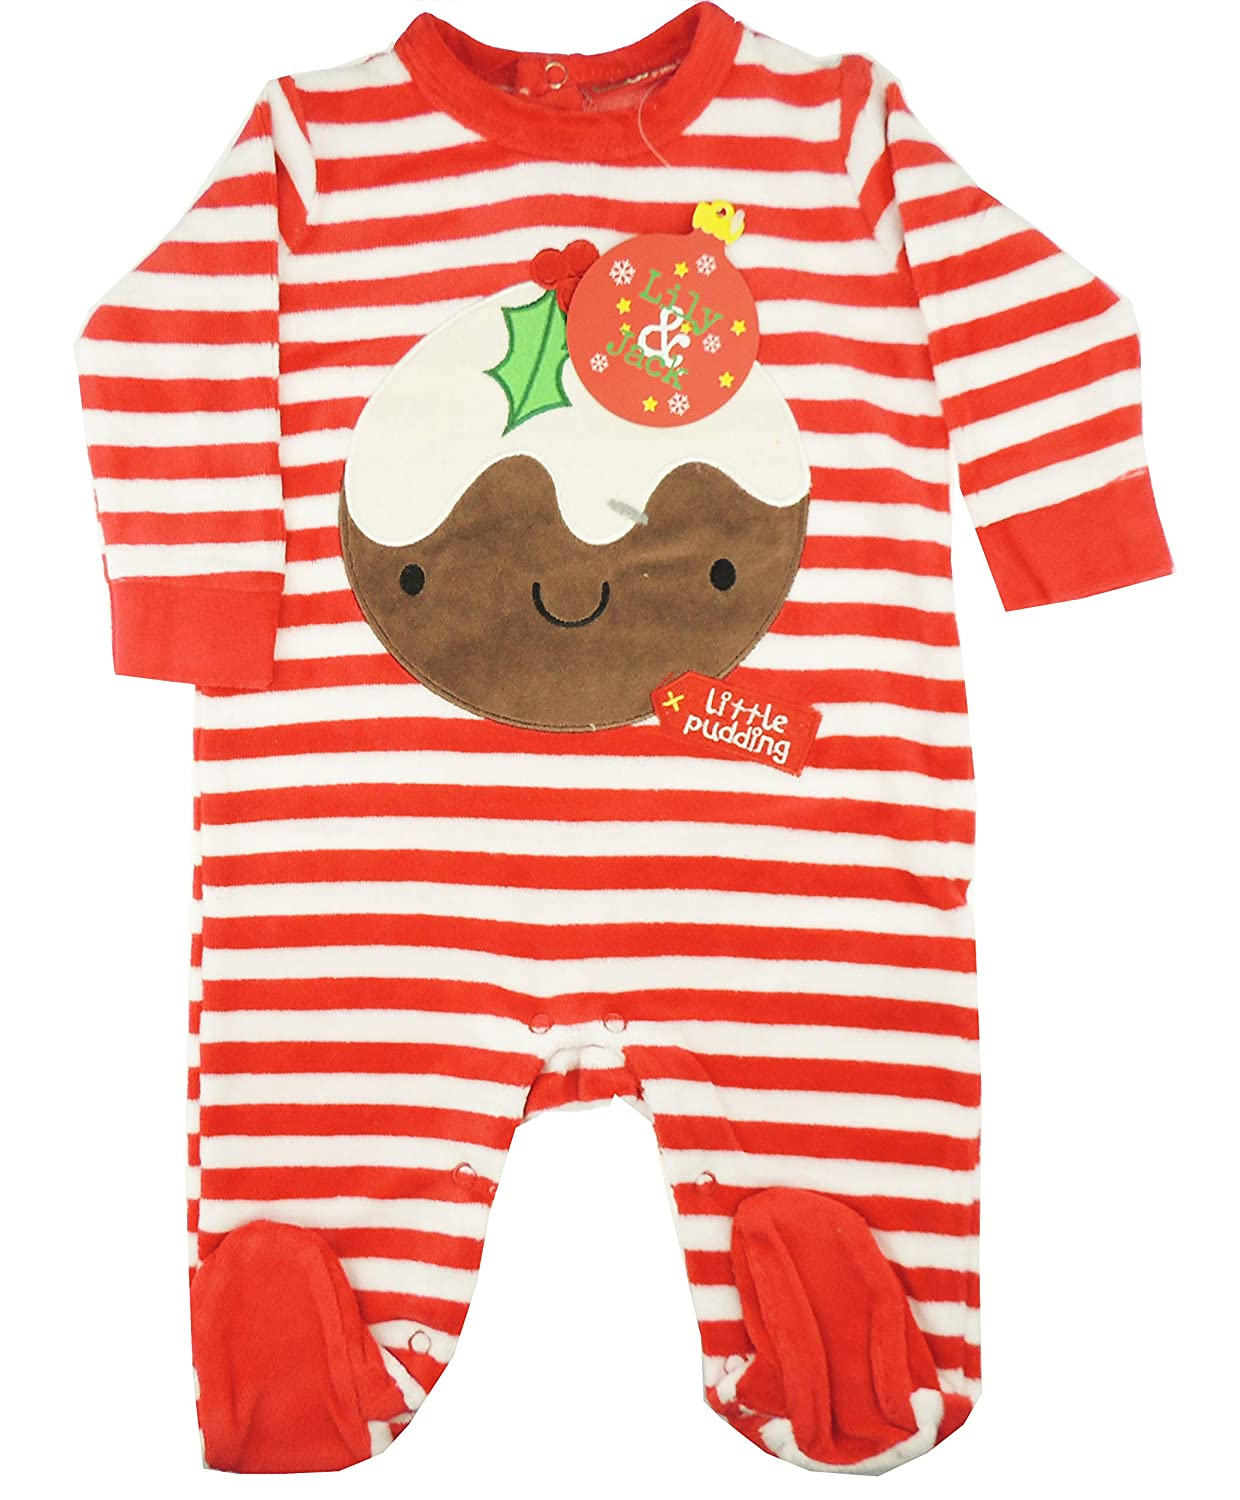 Festive Christmas Winter Baby Girls Boys Romper Sleeper All in One White Red Little Pudding Outfit (0-3 Months)